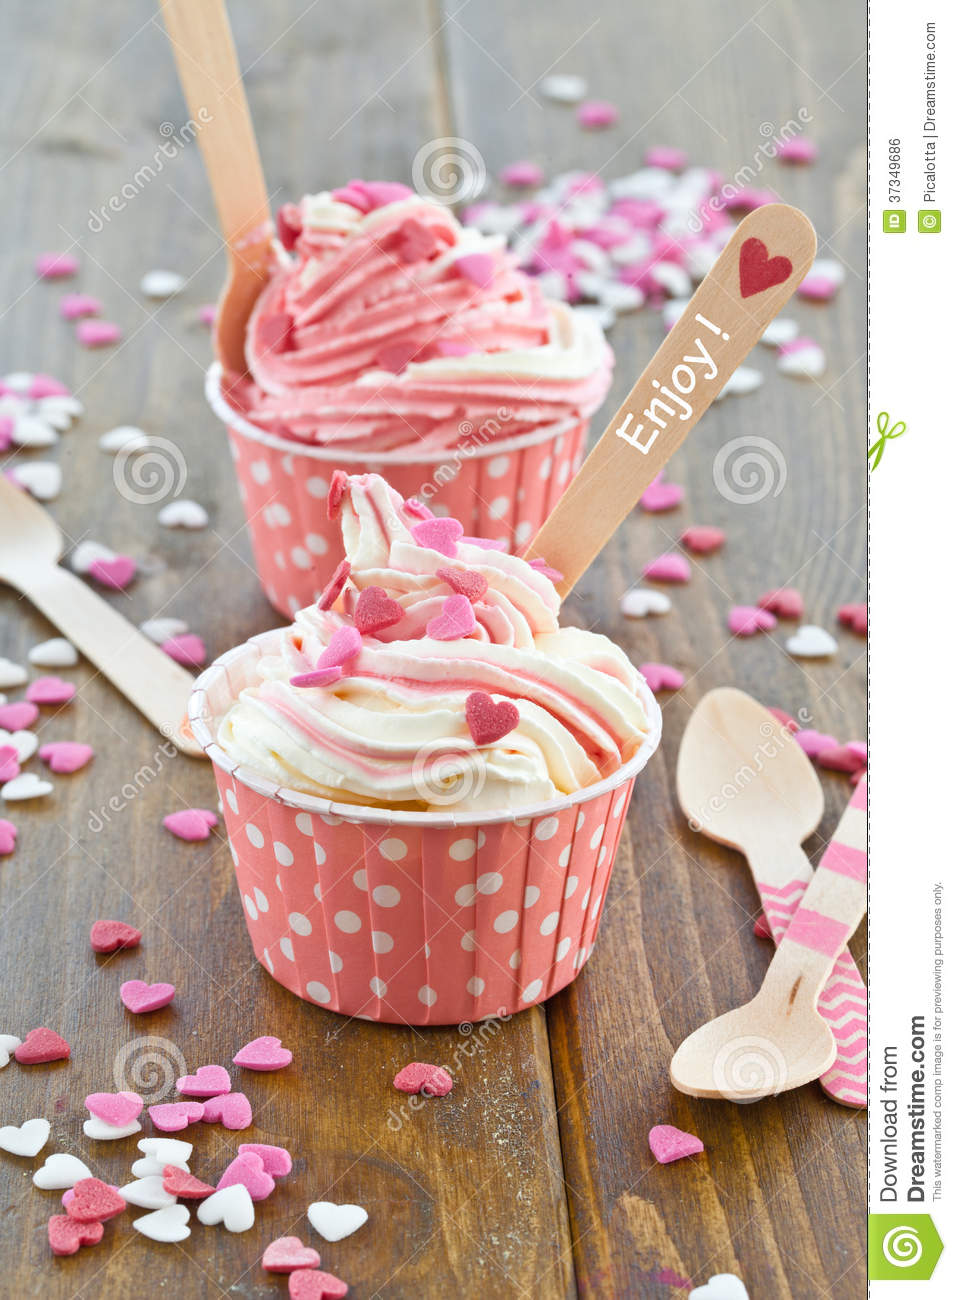 Frozen Yogurt with sugar hearts